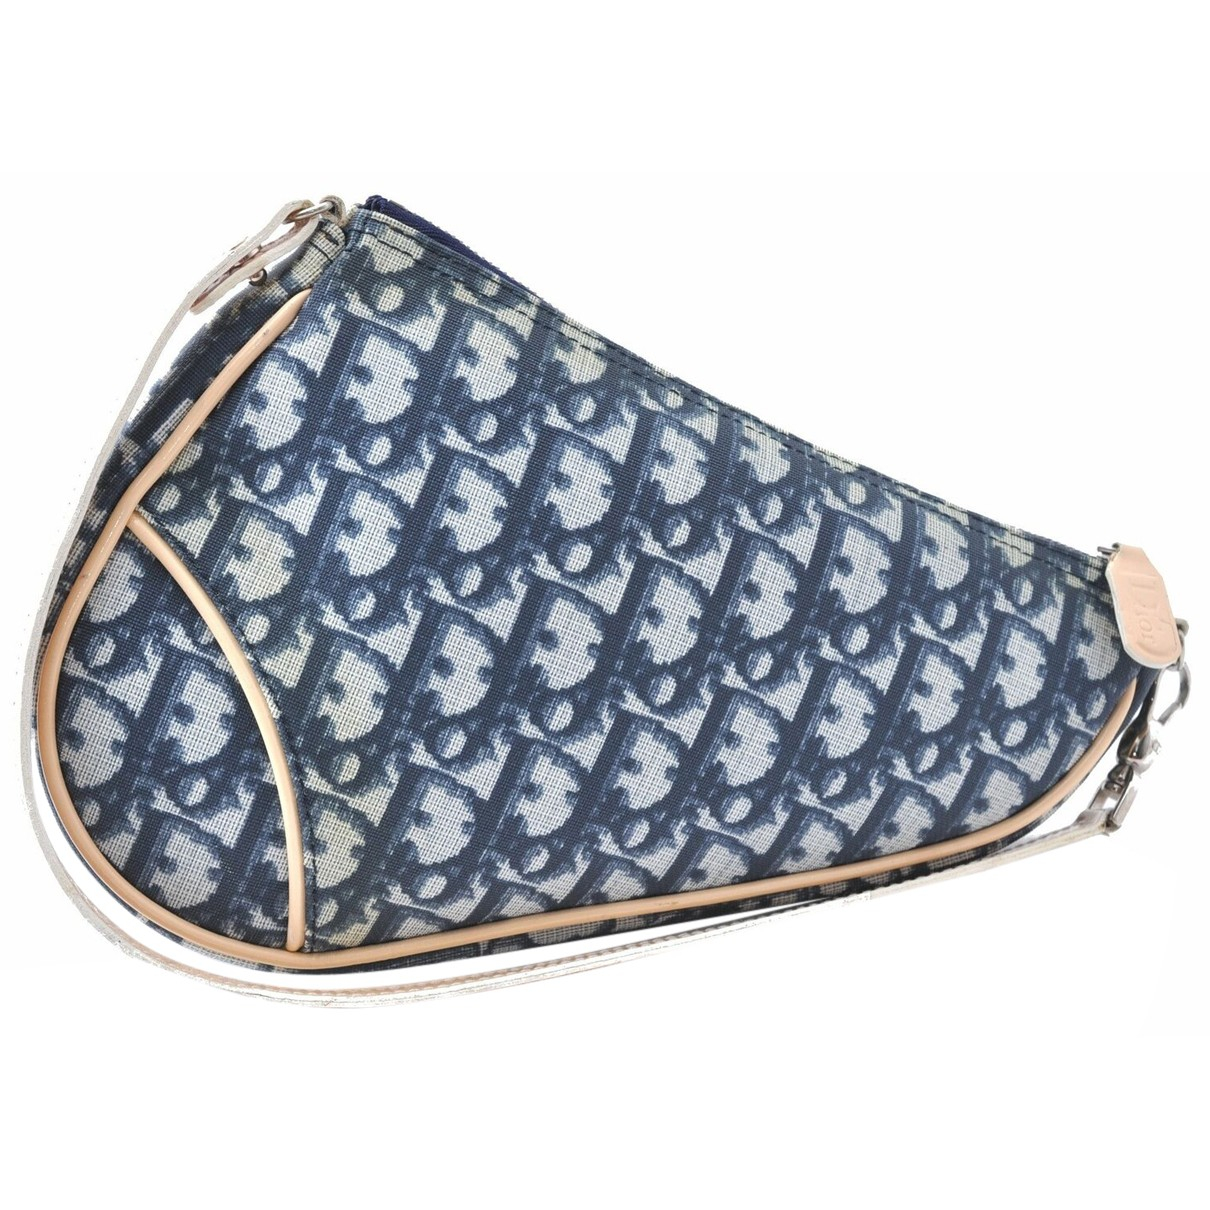 Dior N Navy Denim - Jeans handbag for Women N